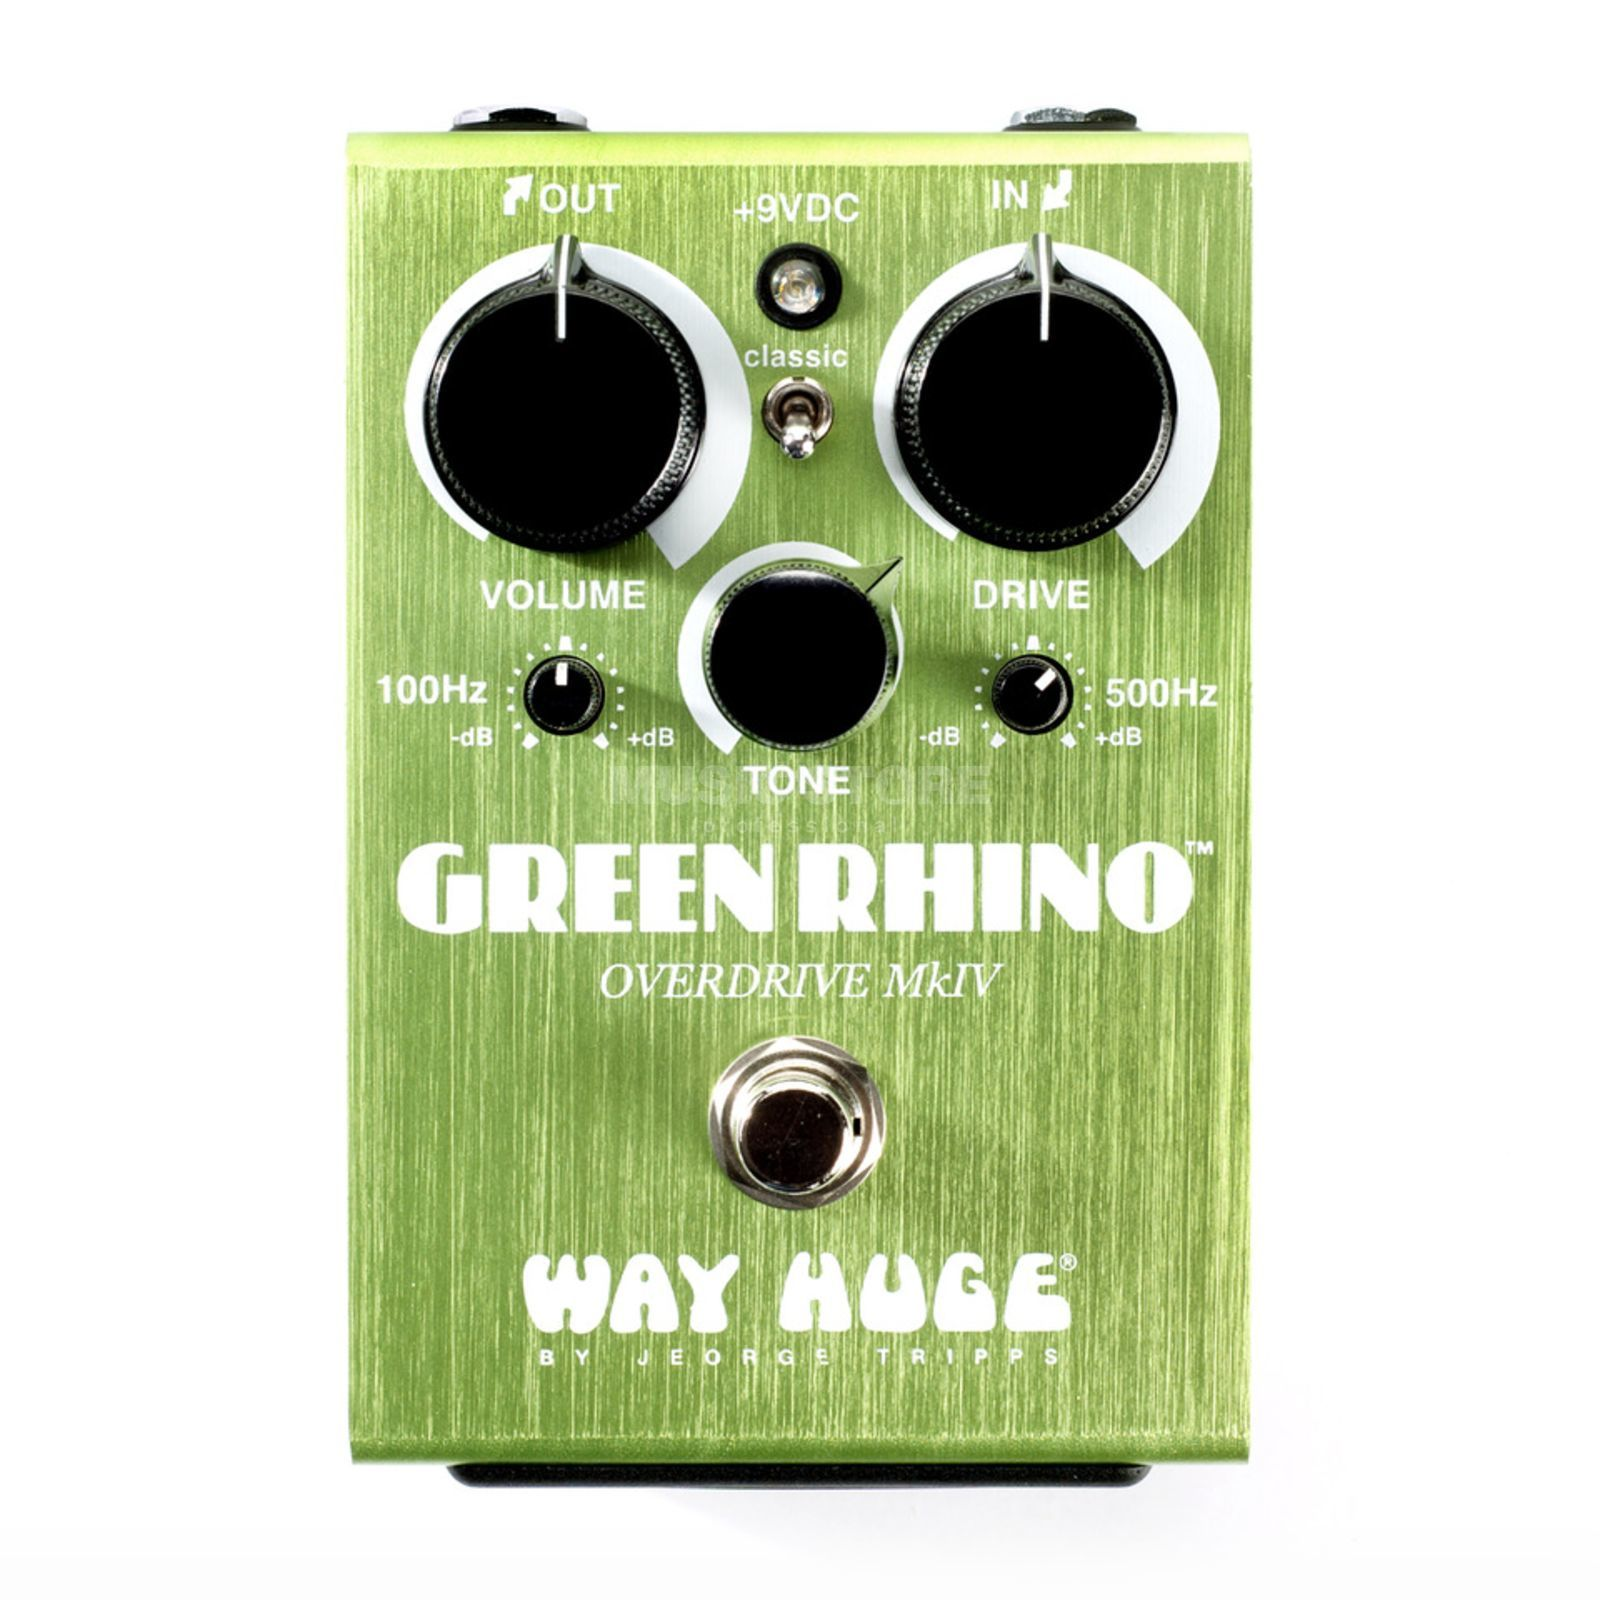 Way Huge Green Rhino MK IV Overdrive Produktbild